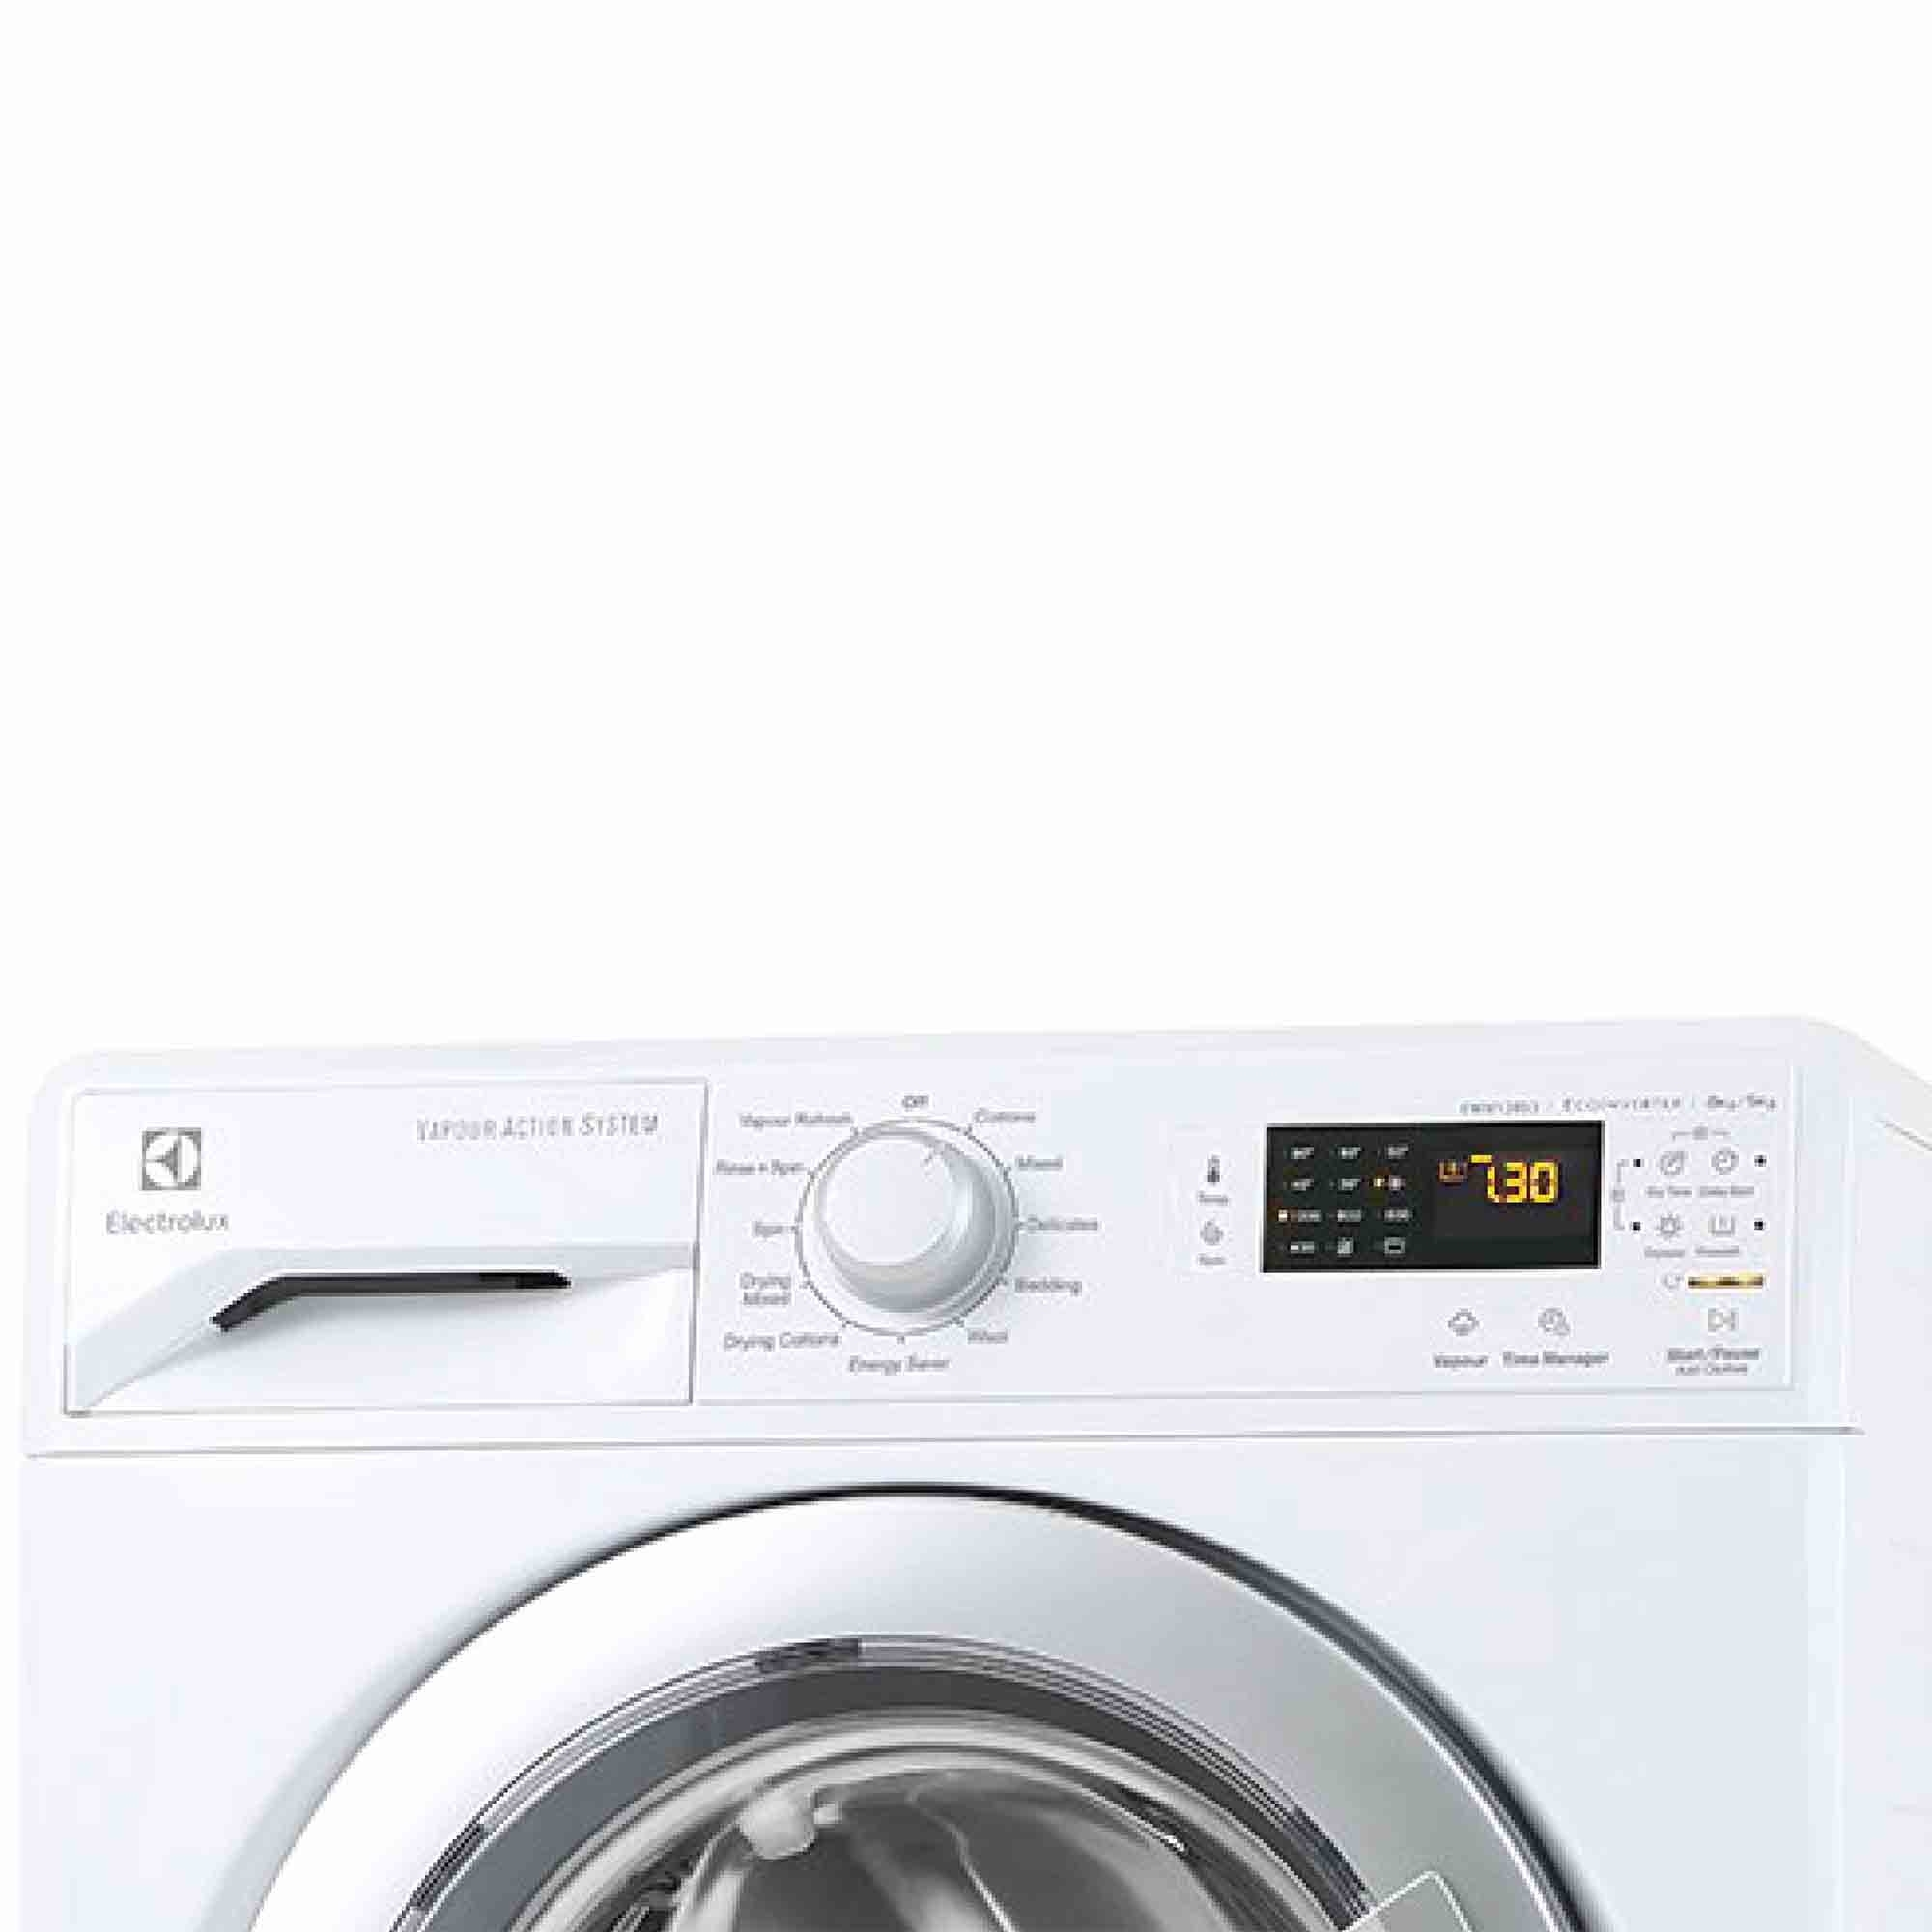 Electrolux Washer Dryer Eww12753 7 End 9 6 2020 446 Pm Washing Machine Wiring Diagram 5 Kg 2017 New Model